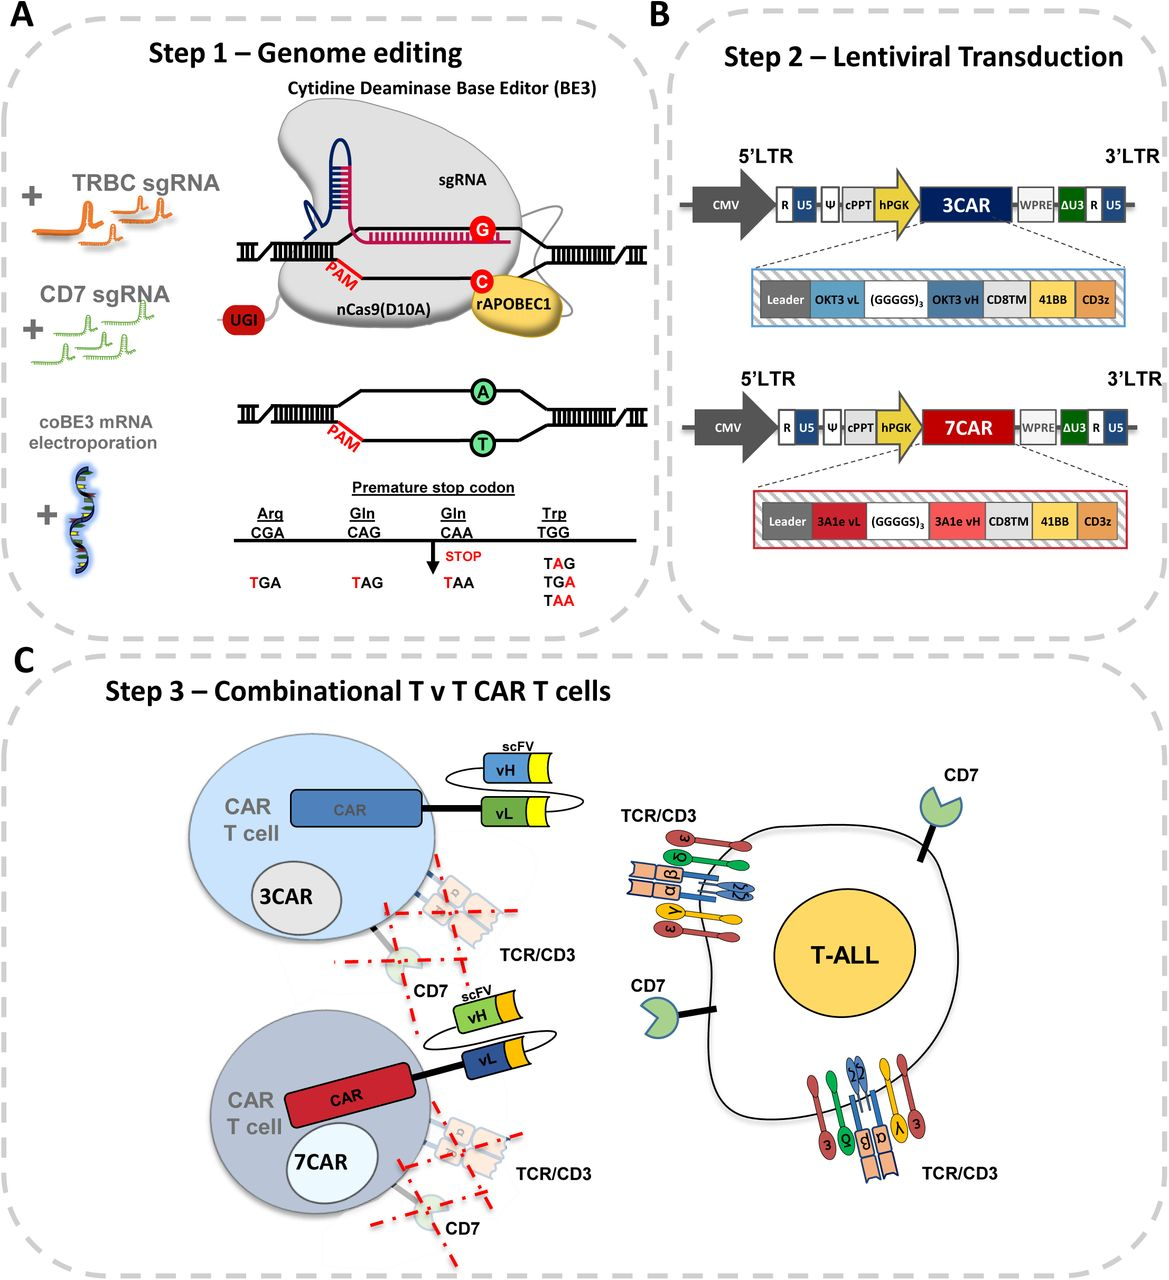 Generation of 'T v T' fratricide resistant CAR T cells. A) Schema of base editing for T cells employing 3 rd generation codon optimised cytidine base deaminase (coBE3) fused to deactivated D10A Cas9 nickase and uracil glycosylase inhibitor (UGI) delivered as mRNA along with TRBC and CD7 single guide RNA (sgRNA). C- > U- > T conversion (G- > A antisense strand) resulting in STOP codon. B) Lentiviral transduction of edited cells from step 1 using 3 rd generation lentiviral vectors. Lentiviral plasmid configuration of CD3ε targeting 2 nd generation chimeric antigen receptor comprising OKT3 vL and vH scFv sequence fused to CD8 transmembrane domain (TM), 41BB co-stimulatory and CD3z activation domains under the control of a hPGK promoter. Lentiviral plasmid configuration of CD7 targeting 2 nd generation CAR comprising 3A1e vL and vH scFv sequence fused to CD8TM-41BB-CD3z under the control of a hPGK. C) coBE3 edited T cells devoid of shared antigens TCR/CD3 and CD7 surface receptors expressing either 3CAR or 7CAR evade fratricide and target T-ALL. BE: base editor; APOBEC: (apolipoprotein B mRNA editing enzyme, catalytic polypeptide-like); sgRNA: single guide RNA; PAM: protospacer adjacent motif; LTR: long terminal repeat; CMV: cytomegalovirus promoter; CAR: chimeric antigen receptor; cPPT: central polypurine track; U5: untranslated 5' region; DU3: delta untranslated 3' region; hPGK: human phosphoglycerate kinase promoter; vL: variable light chain; vH: variable heavy chain.